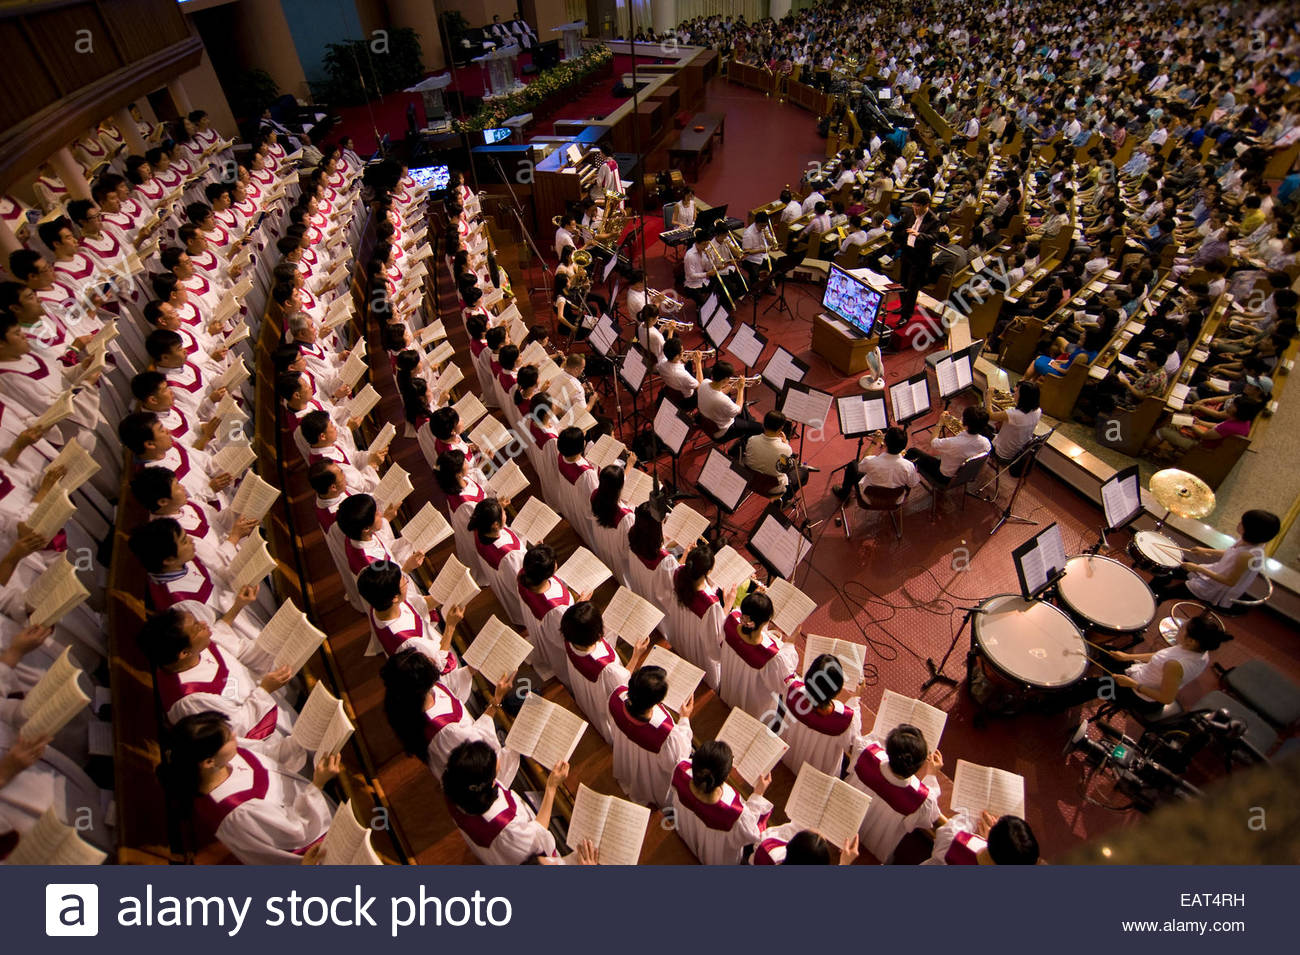 The congregation joins the choir in a hymn during church service. - Stock Image